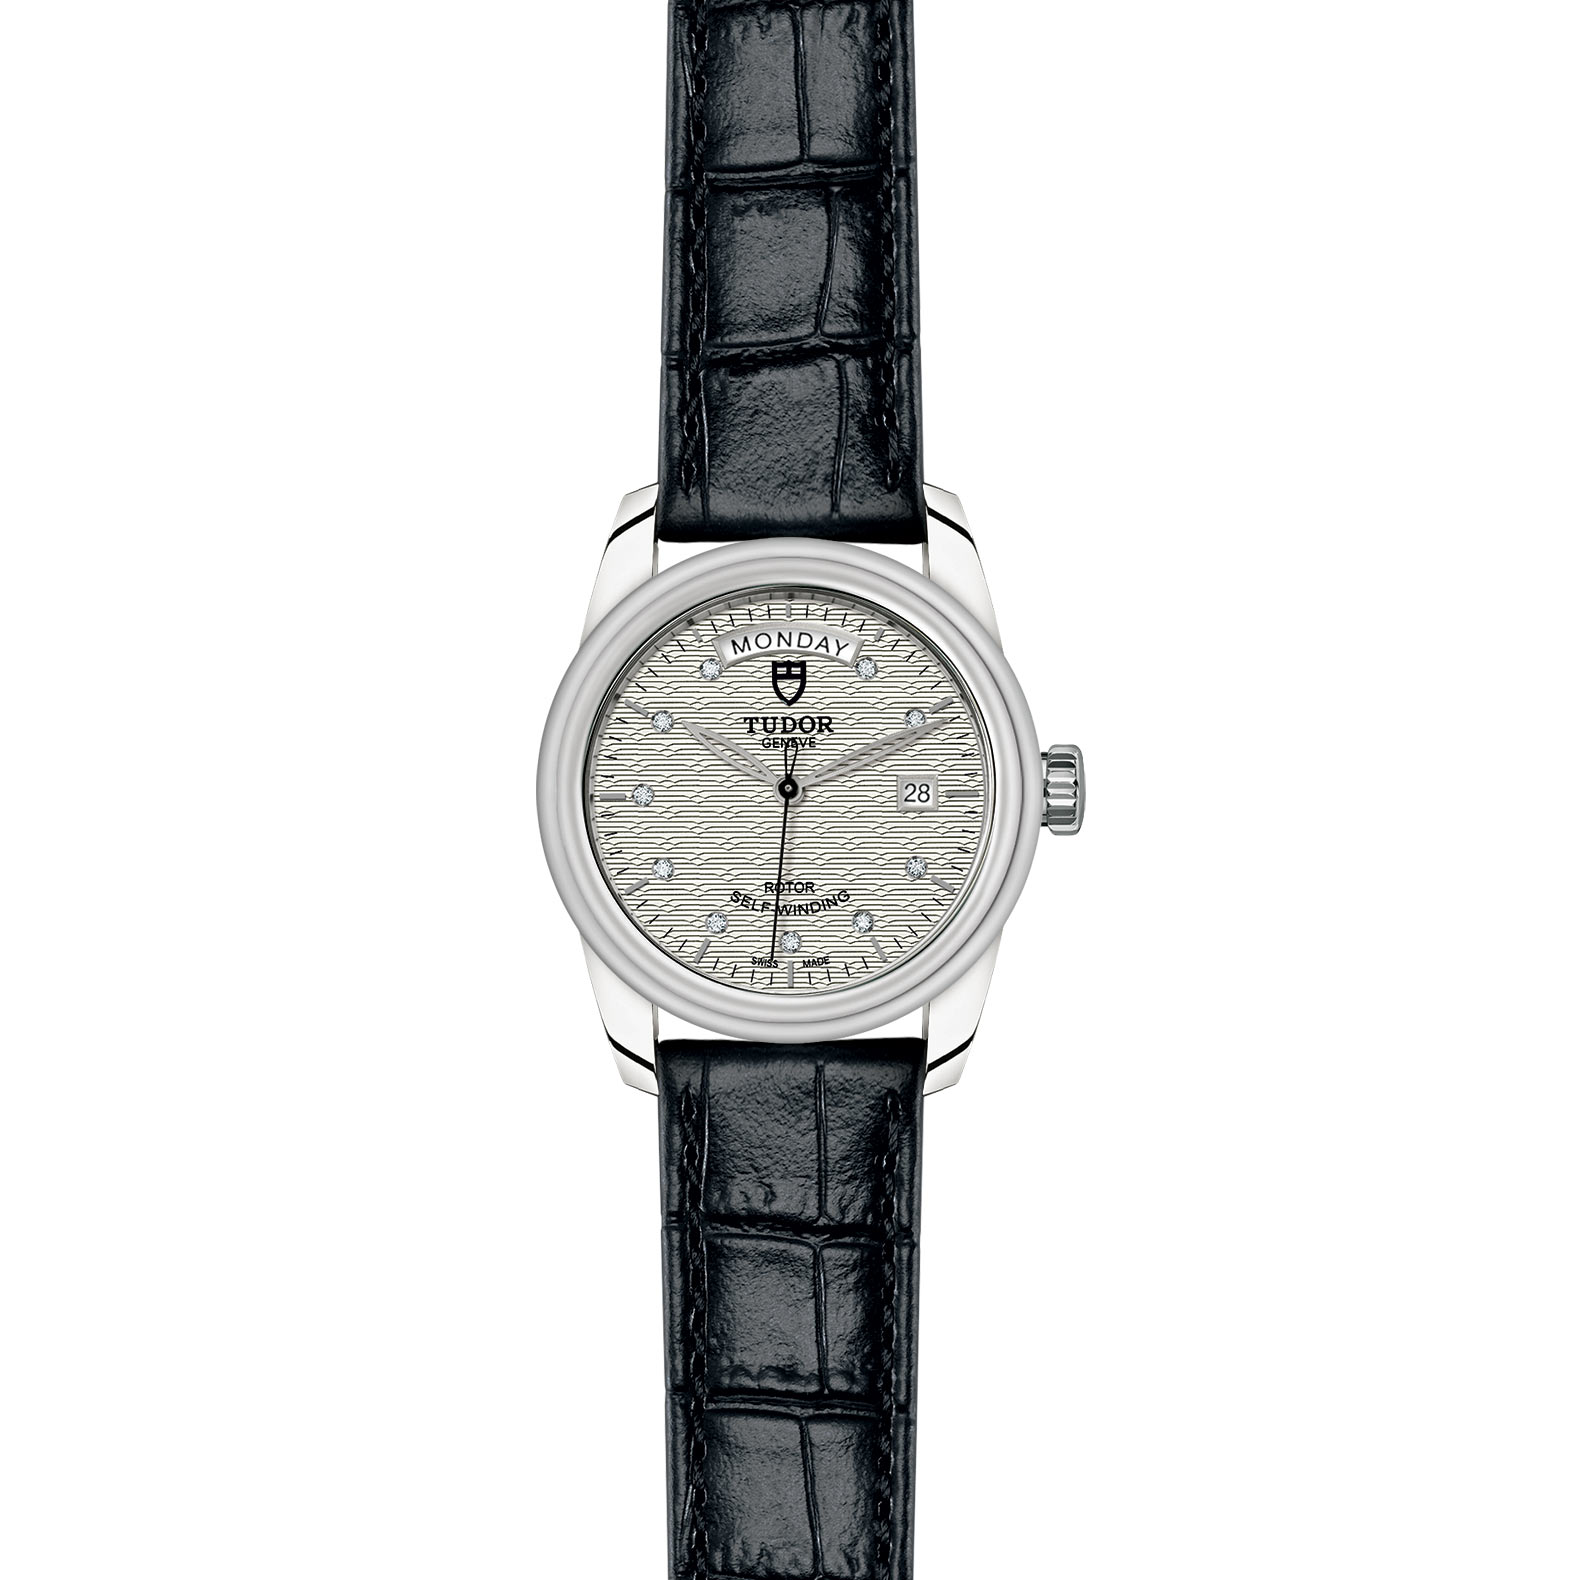 TUDOR Glamour Date Day M56000 0038 Frontfacing